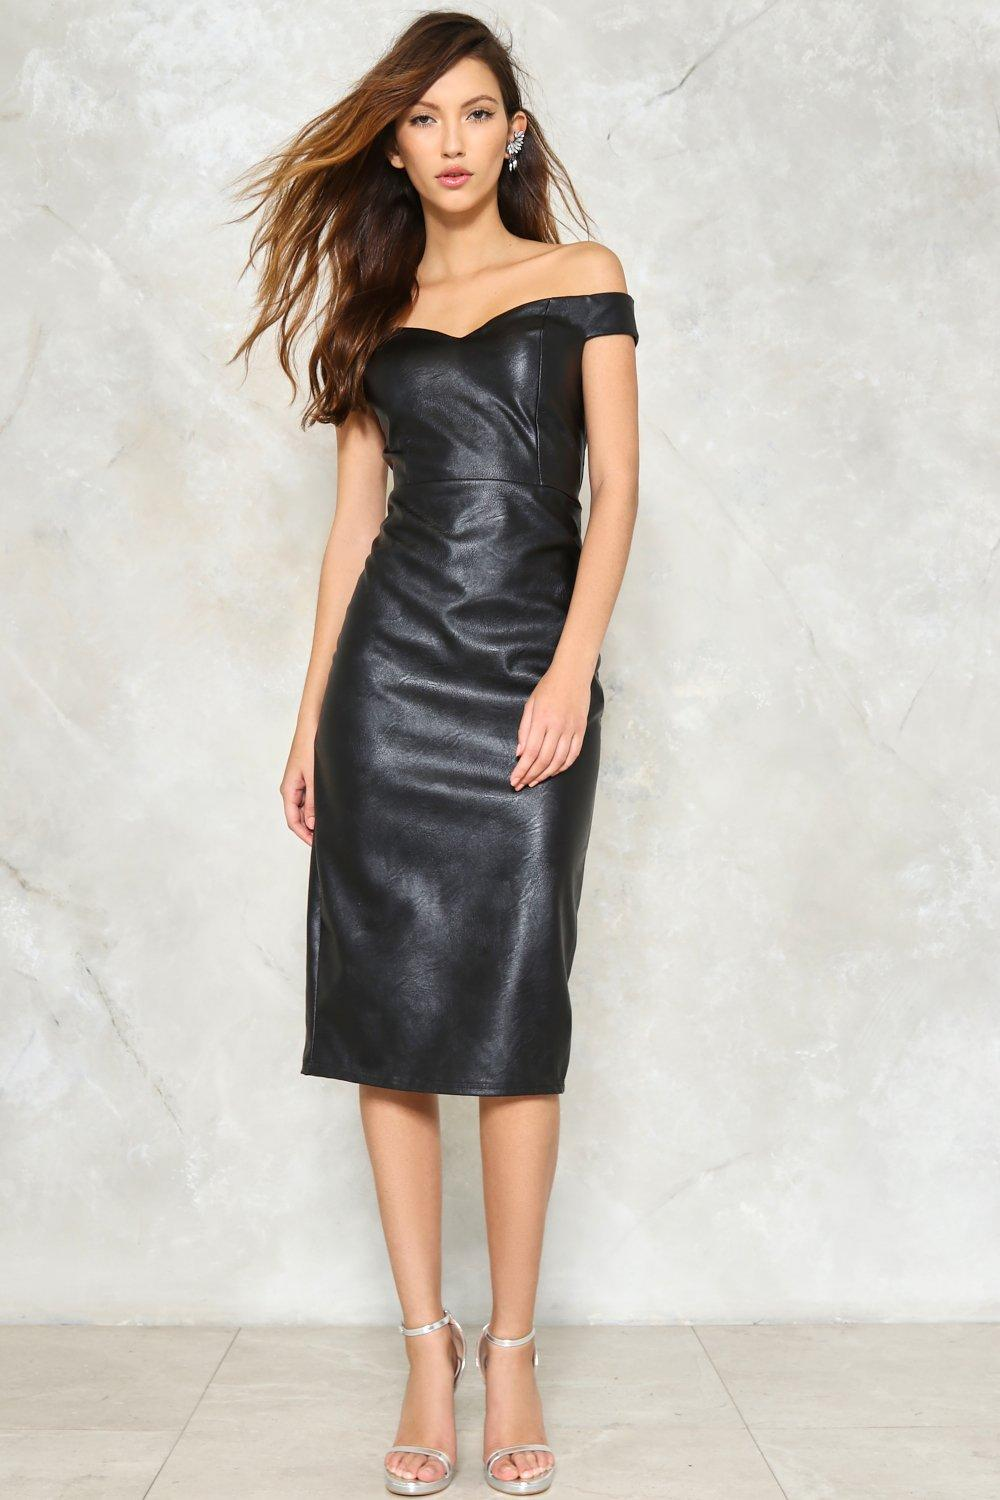 79f1297c65 Hot Date Off-the-Shoulder Faux Leather Dress | Shop Clothes at Nasty ...